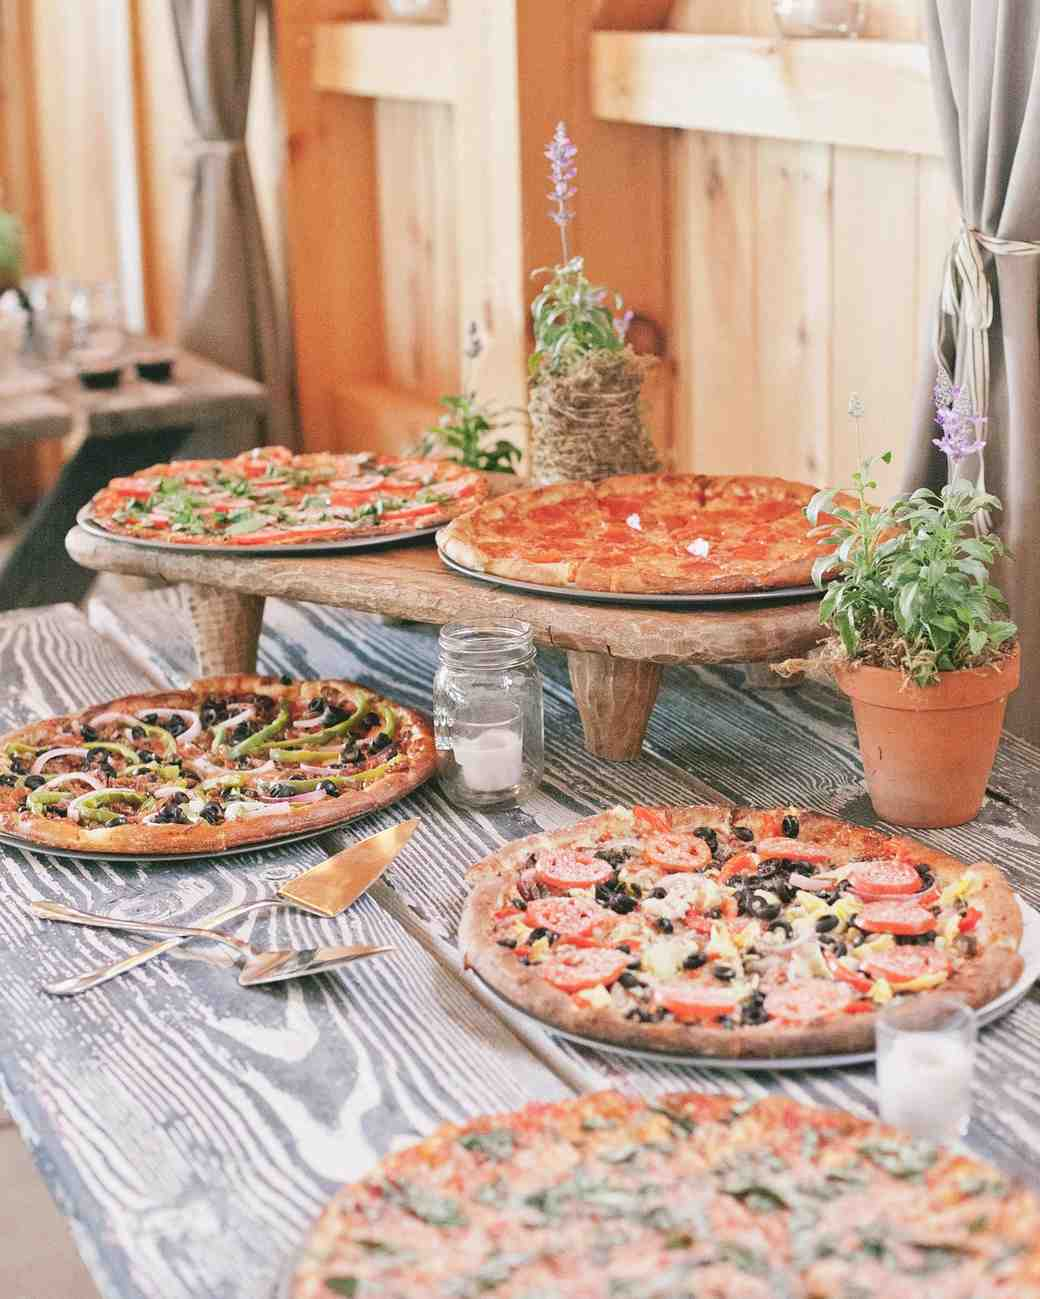 25 unexpected wedding food ideas your guests will love martha photography onelove photo solutioingenieria Images